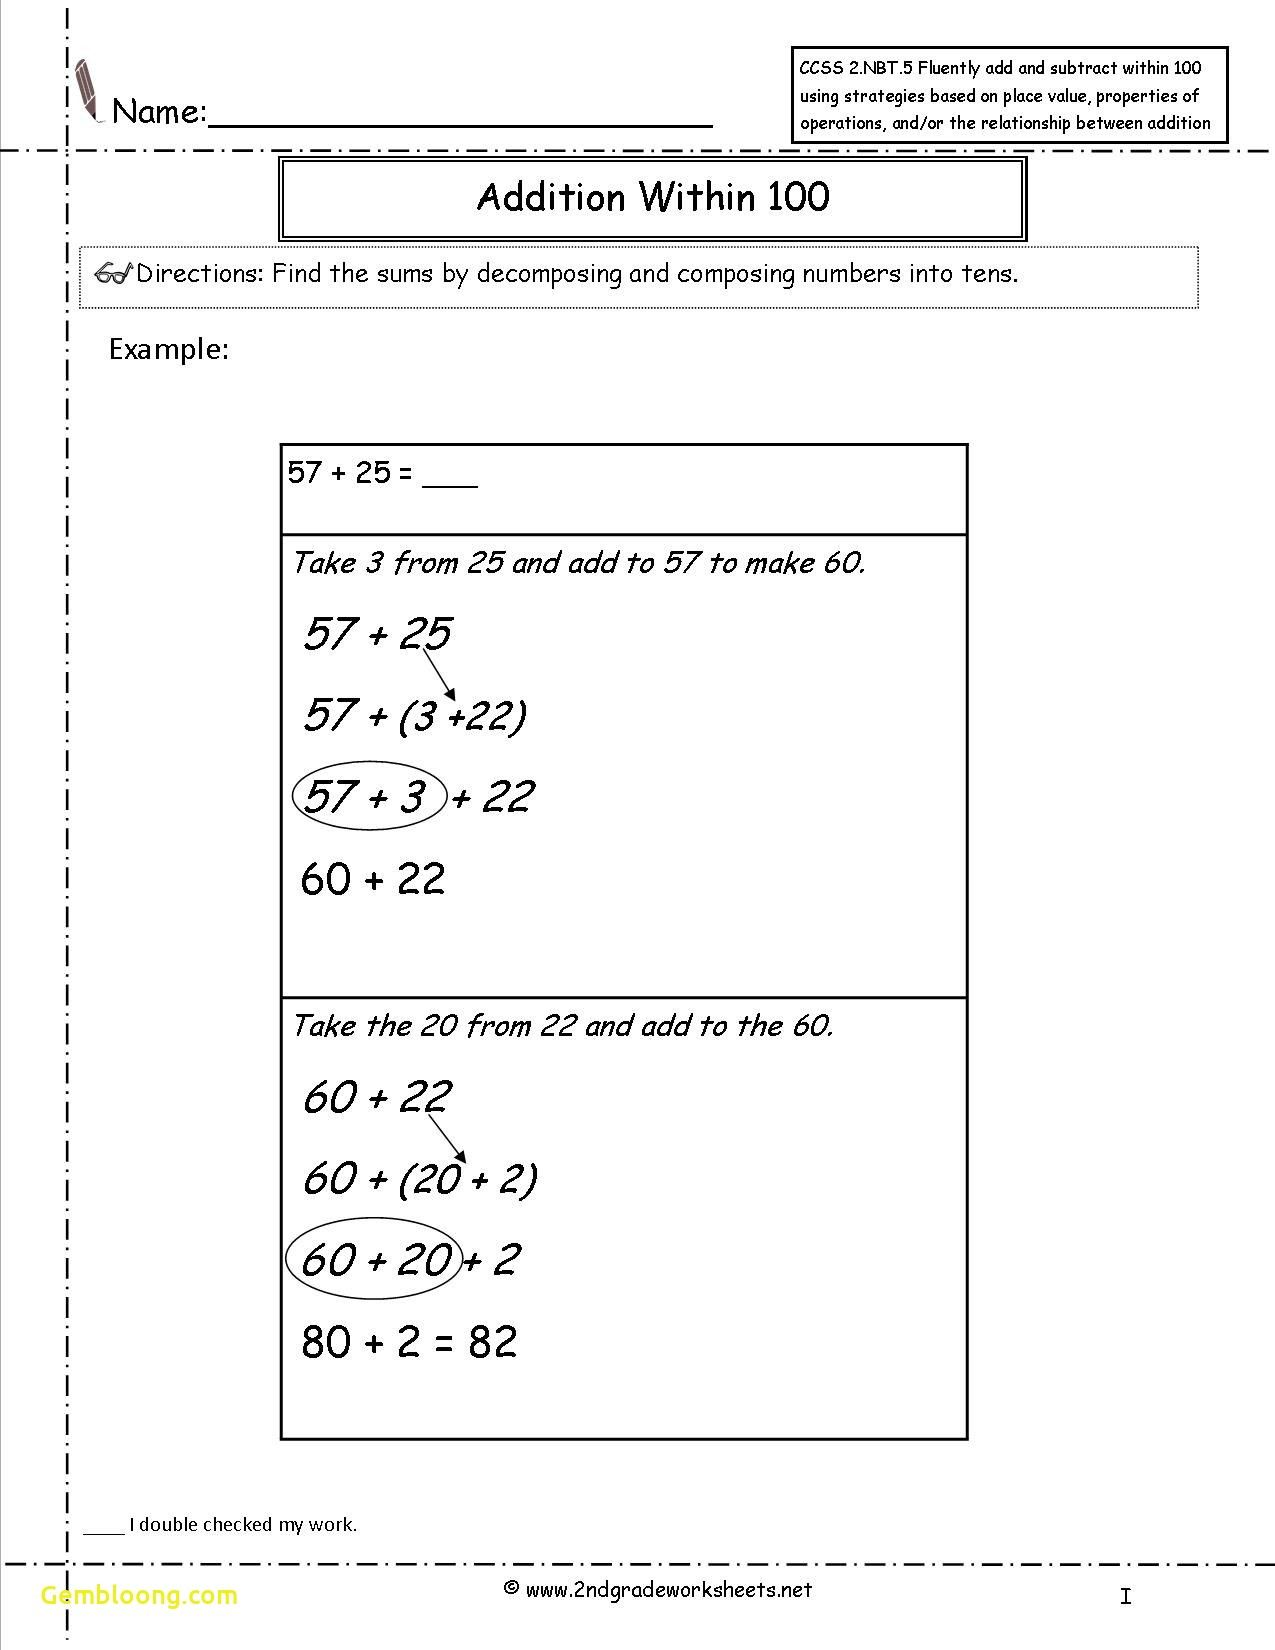 Readable Math Addition And Subtraction Worksheets For 3rd Grade In 2020 Common Core Math Worksheets Free Printable Math Worksheets Addition And Subtraction Worksheets